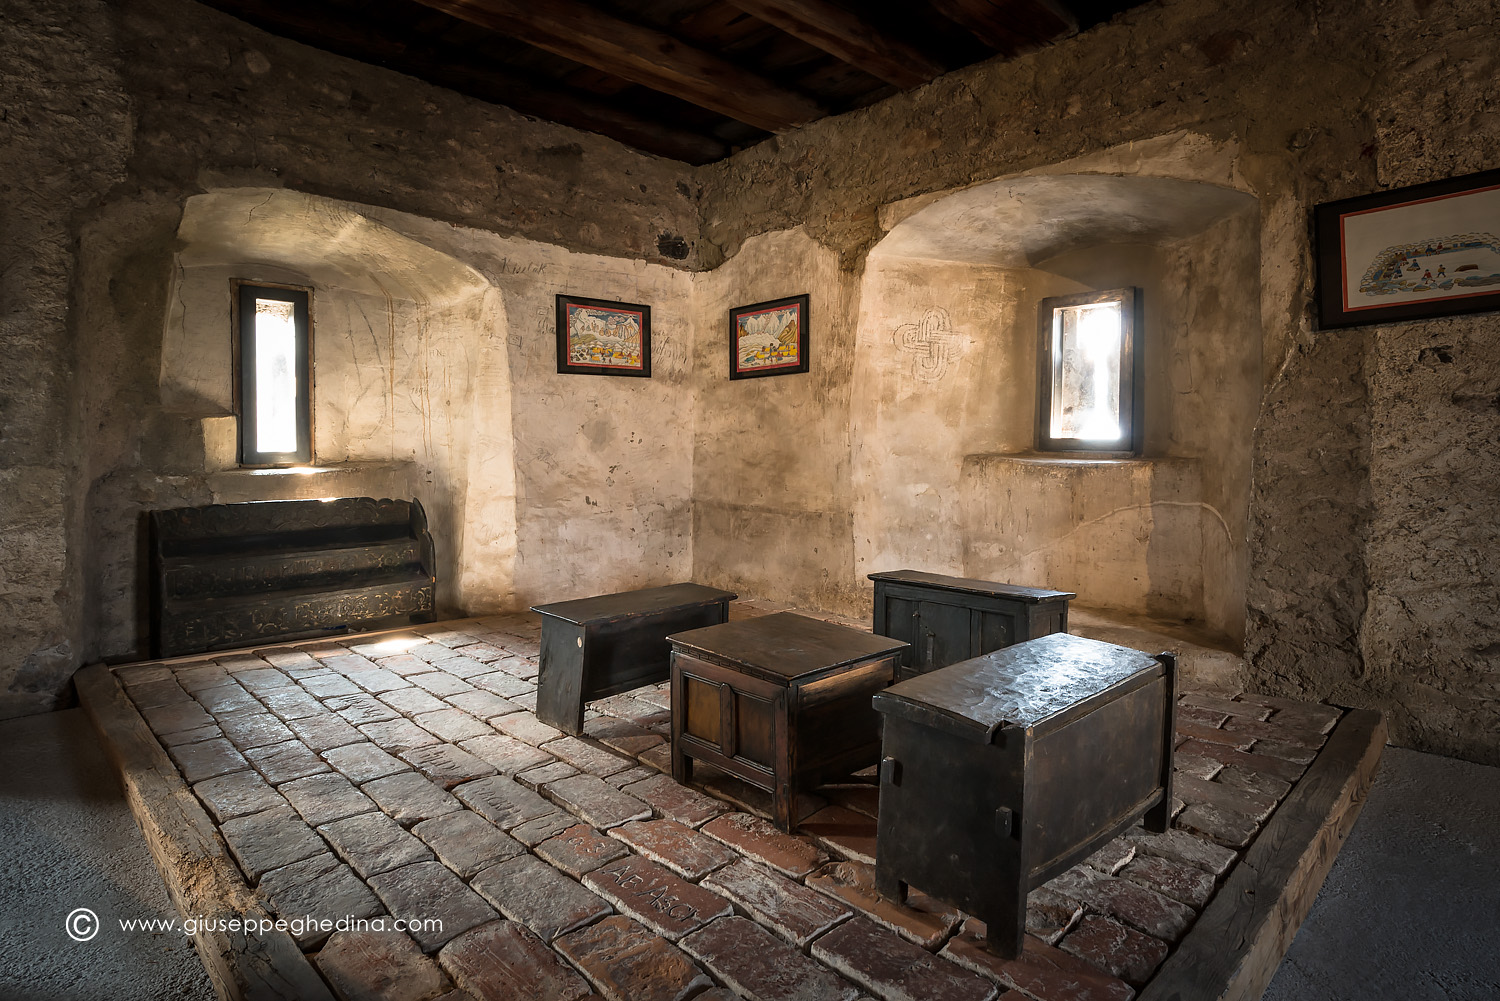 20140402_052_photo_giuseppe_ghedina_messner_mountiam_museum_ripa.jpg